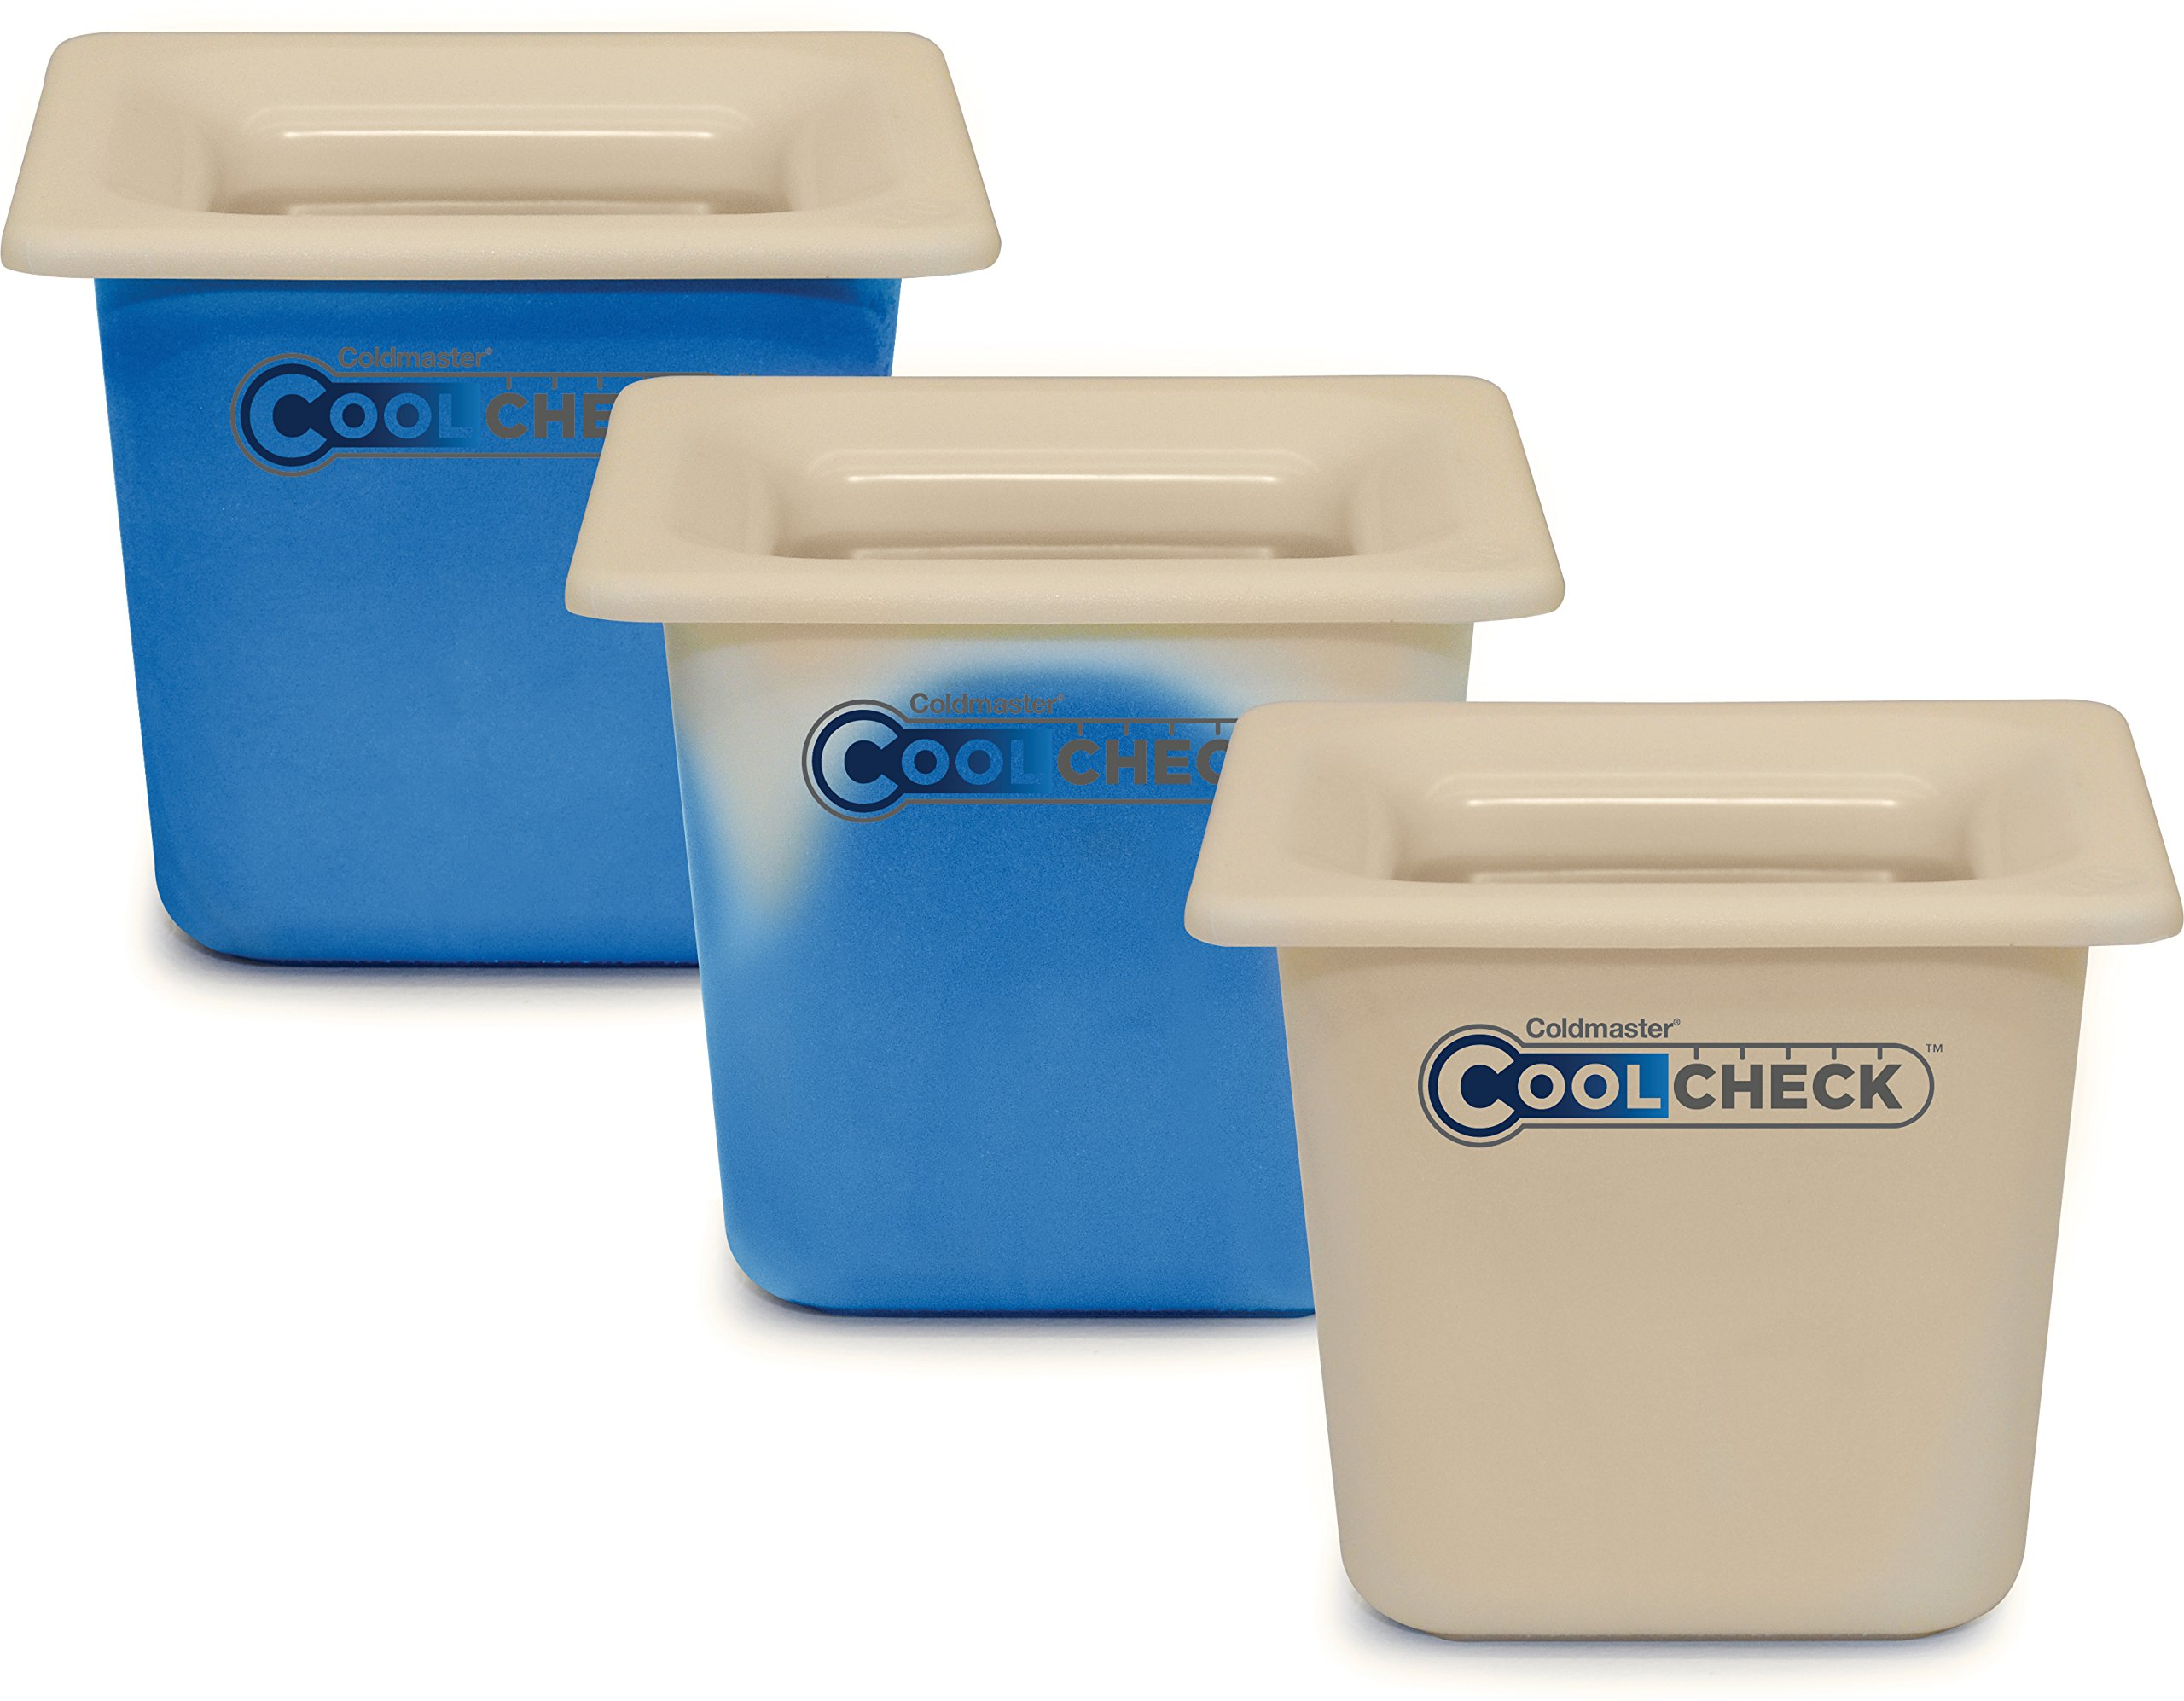 Carlisle CM1100C1402 Coldmaster CoolCheck 6'' Deep Full-Size Insulated Cold Food Pan, 15 Quart, Color Changing, White/Blue by Carlisle (Image #8)